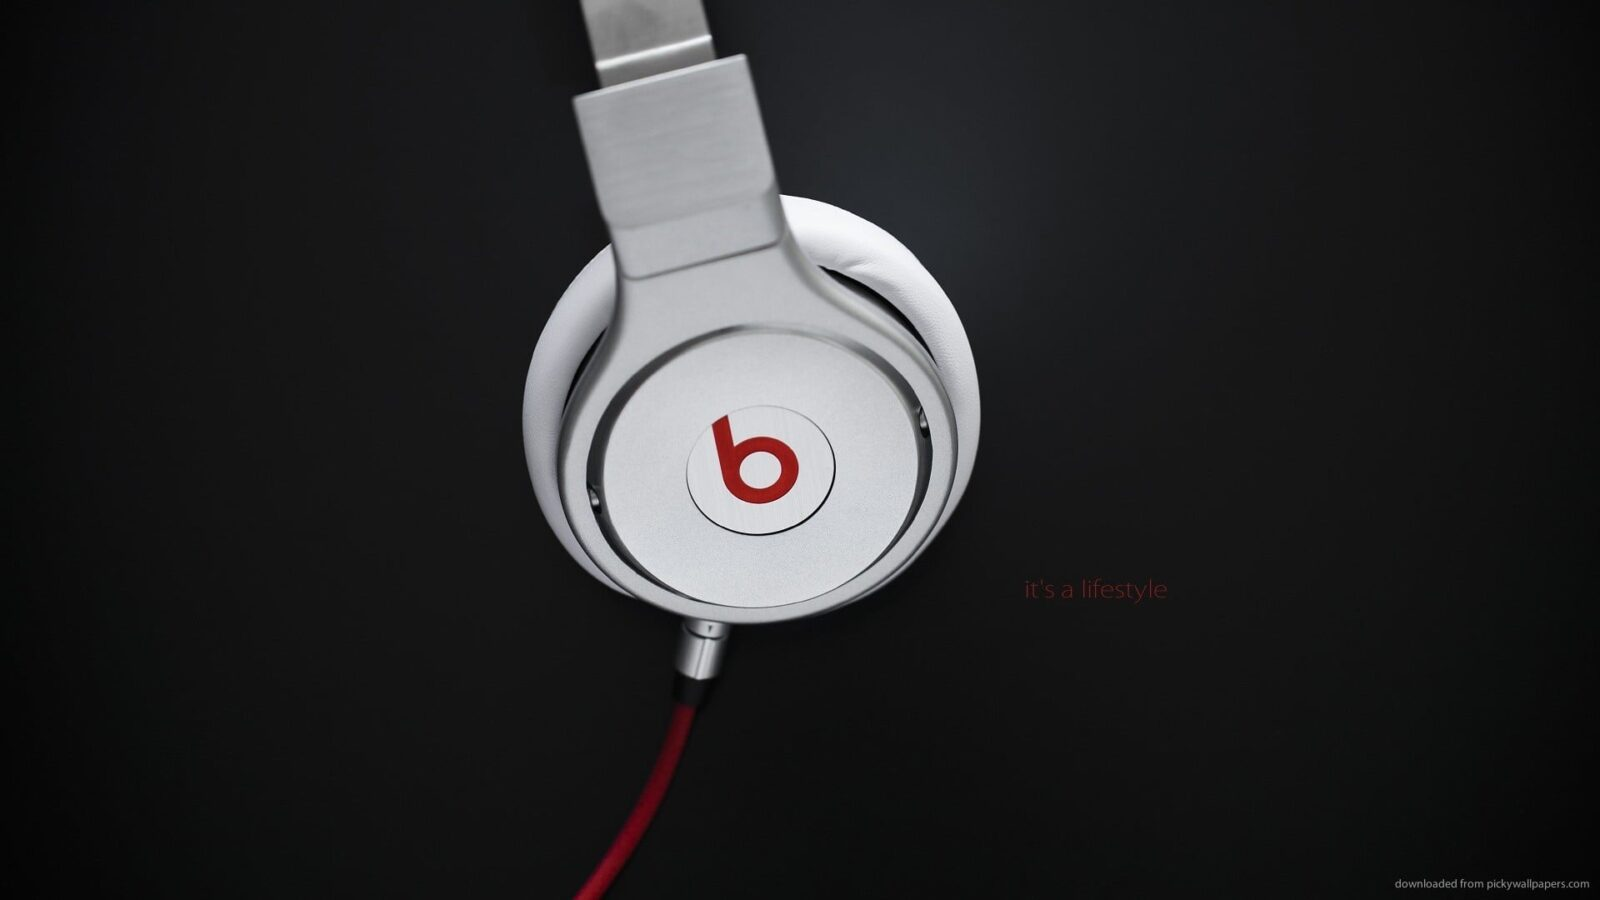 Beats By Dr Dre pro full HD image